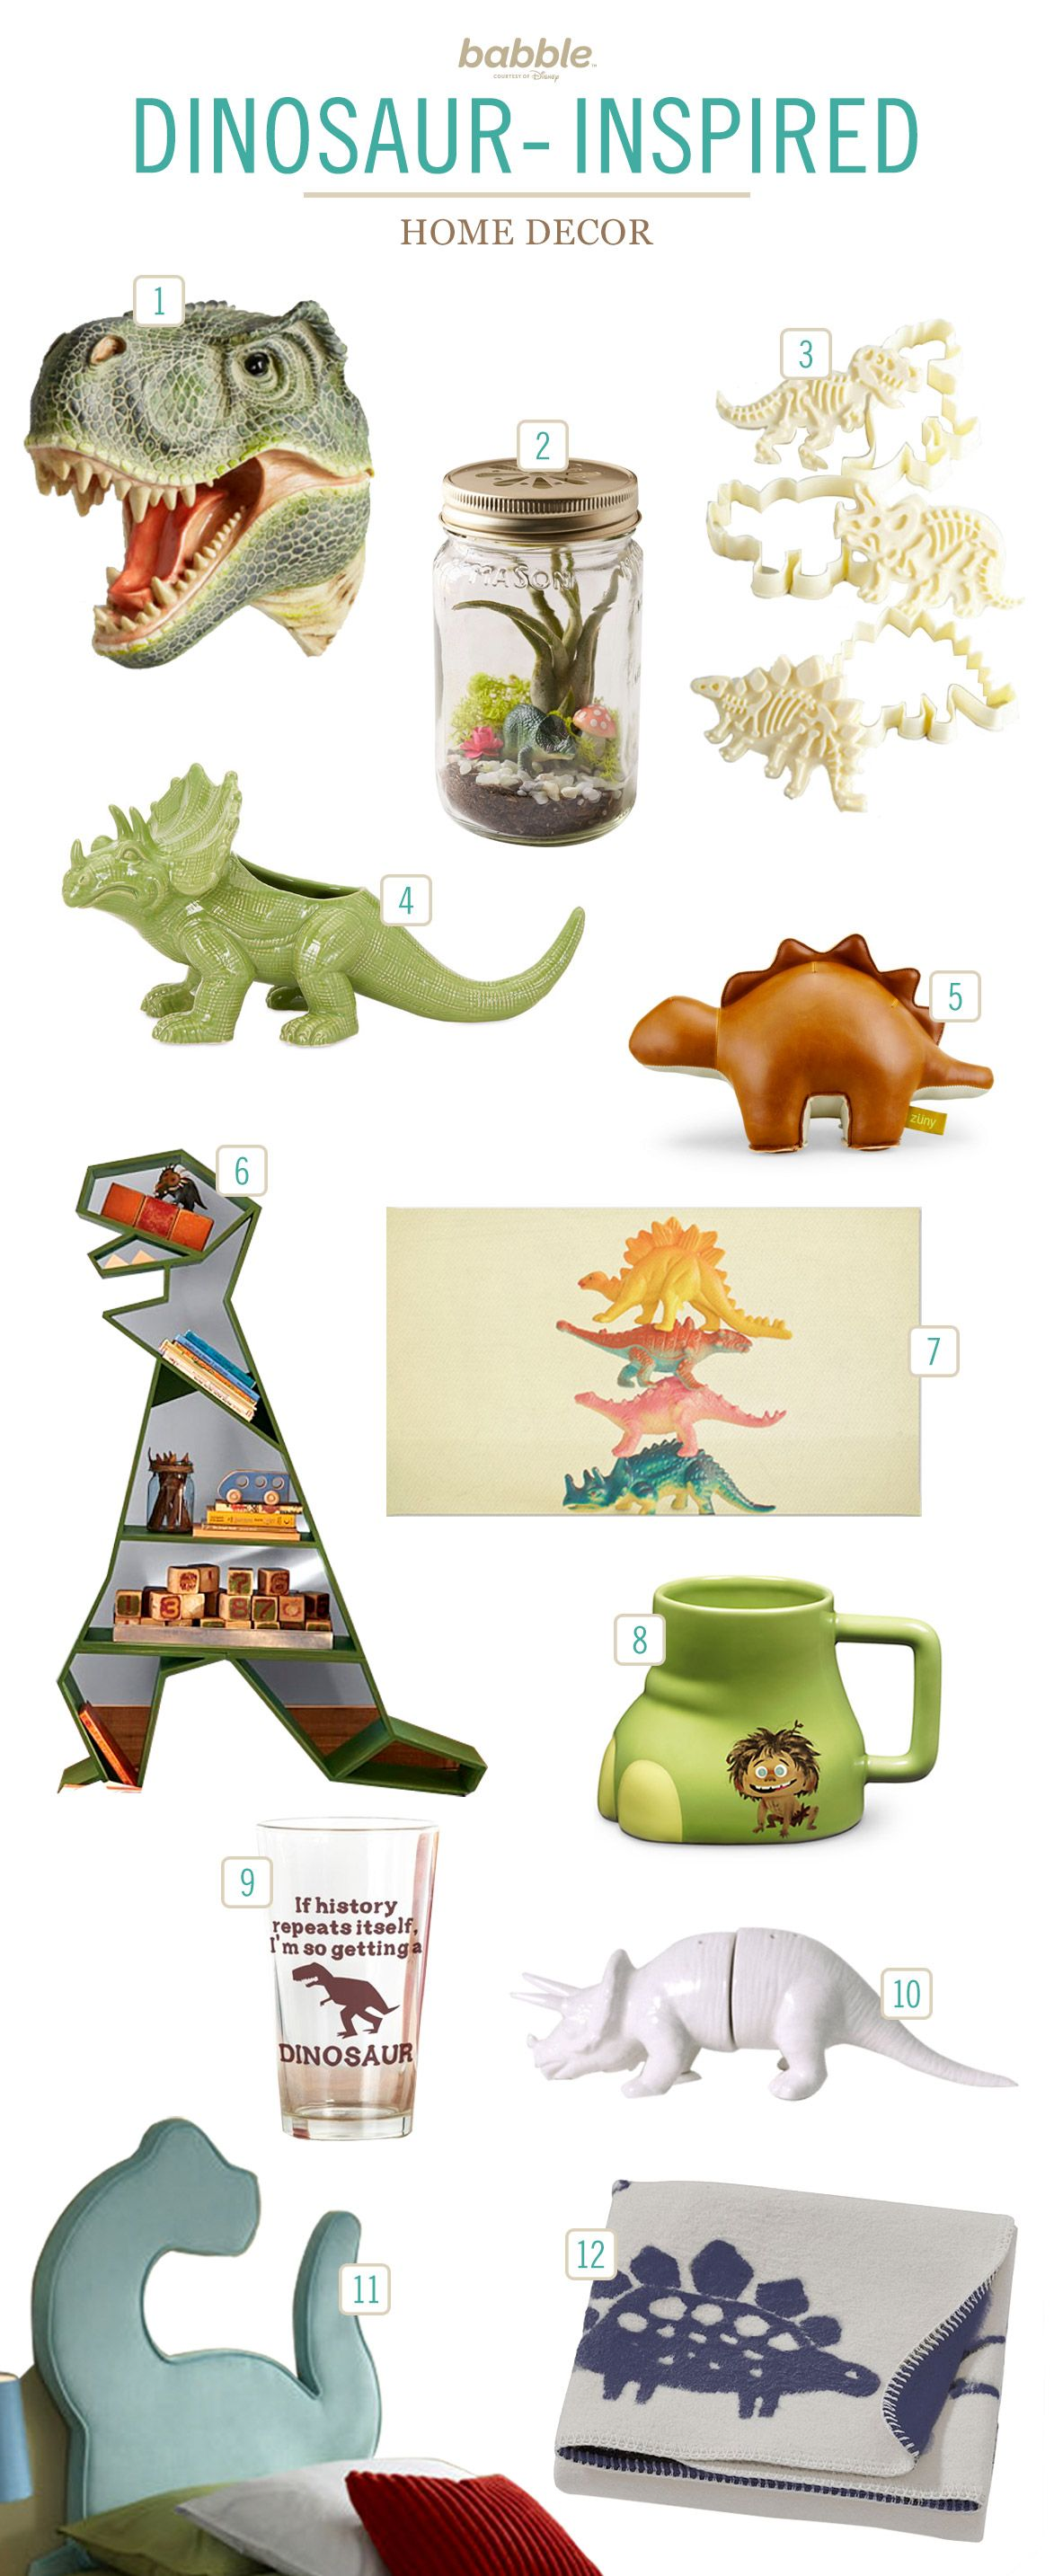 Dinosaur Home Decor For The Whole Family